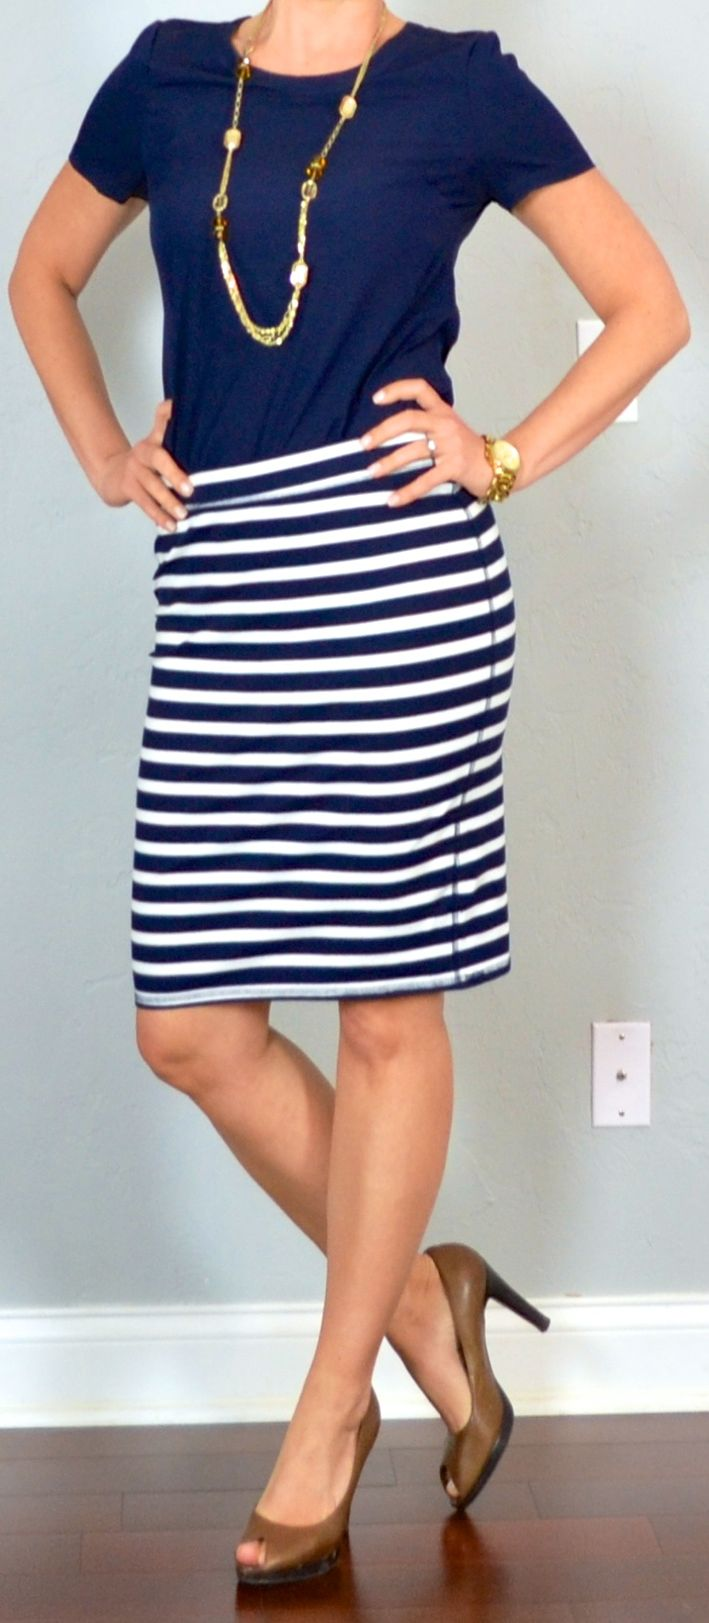 outfit post: navy blouse, striped jersey pencil skirt, brown peep toed pumps | Outfit Posts